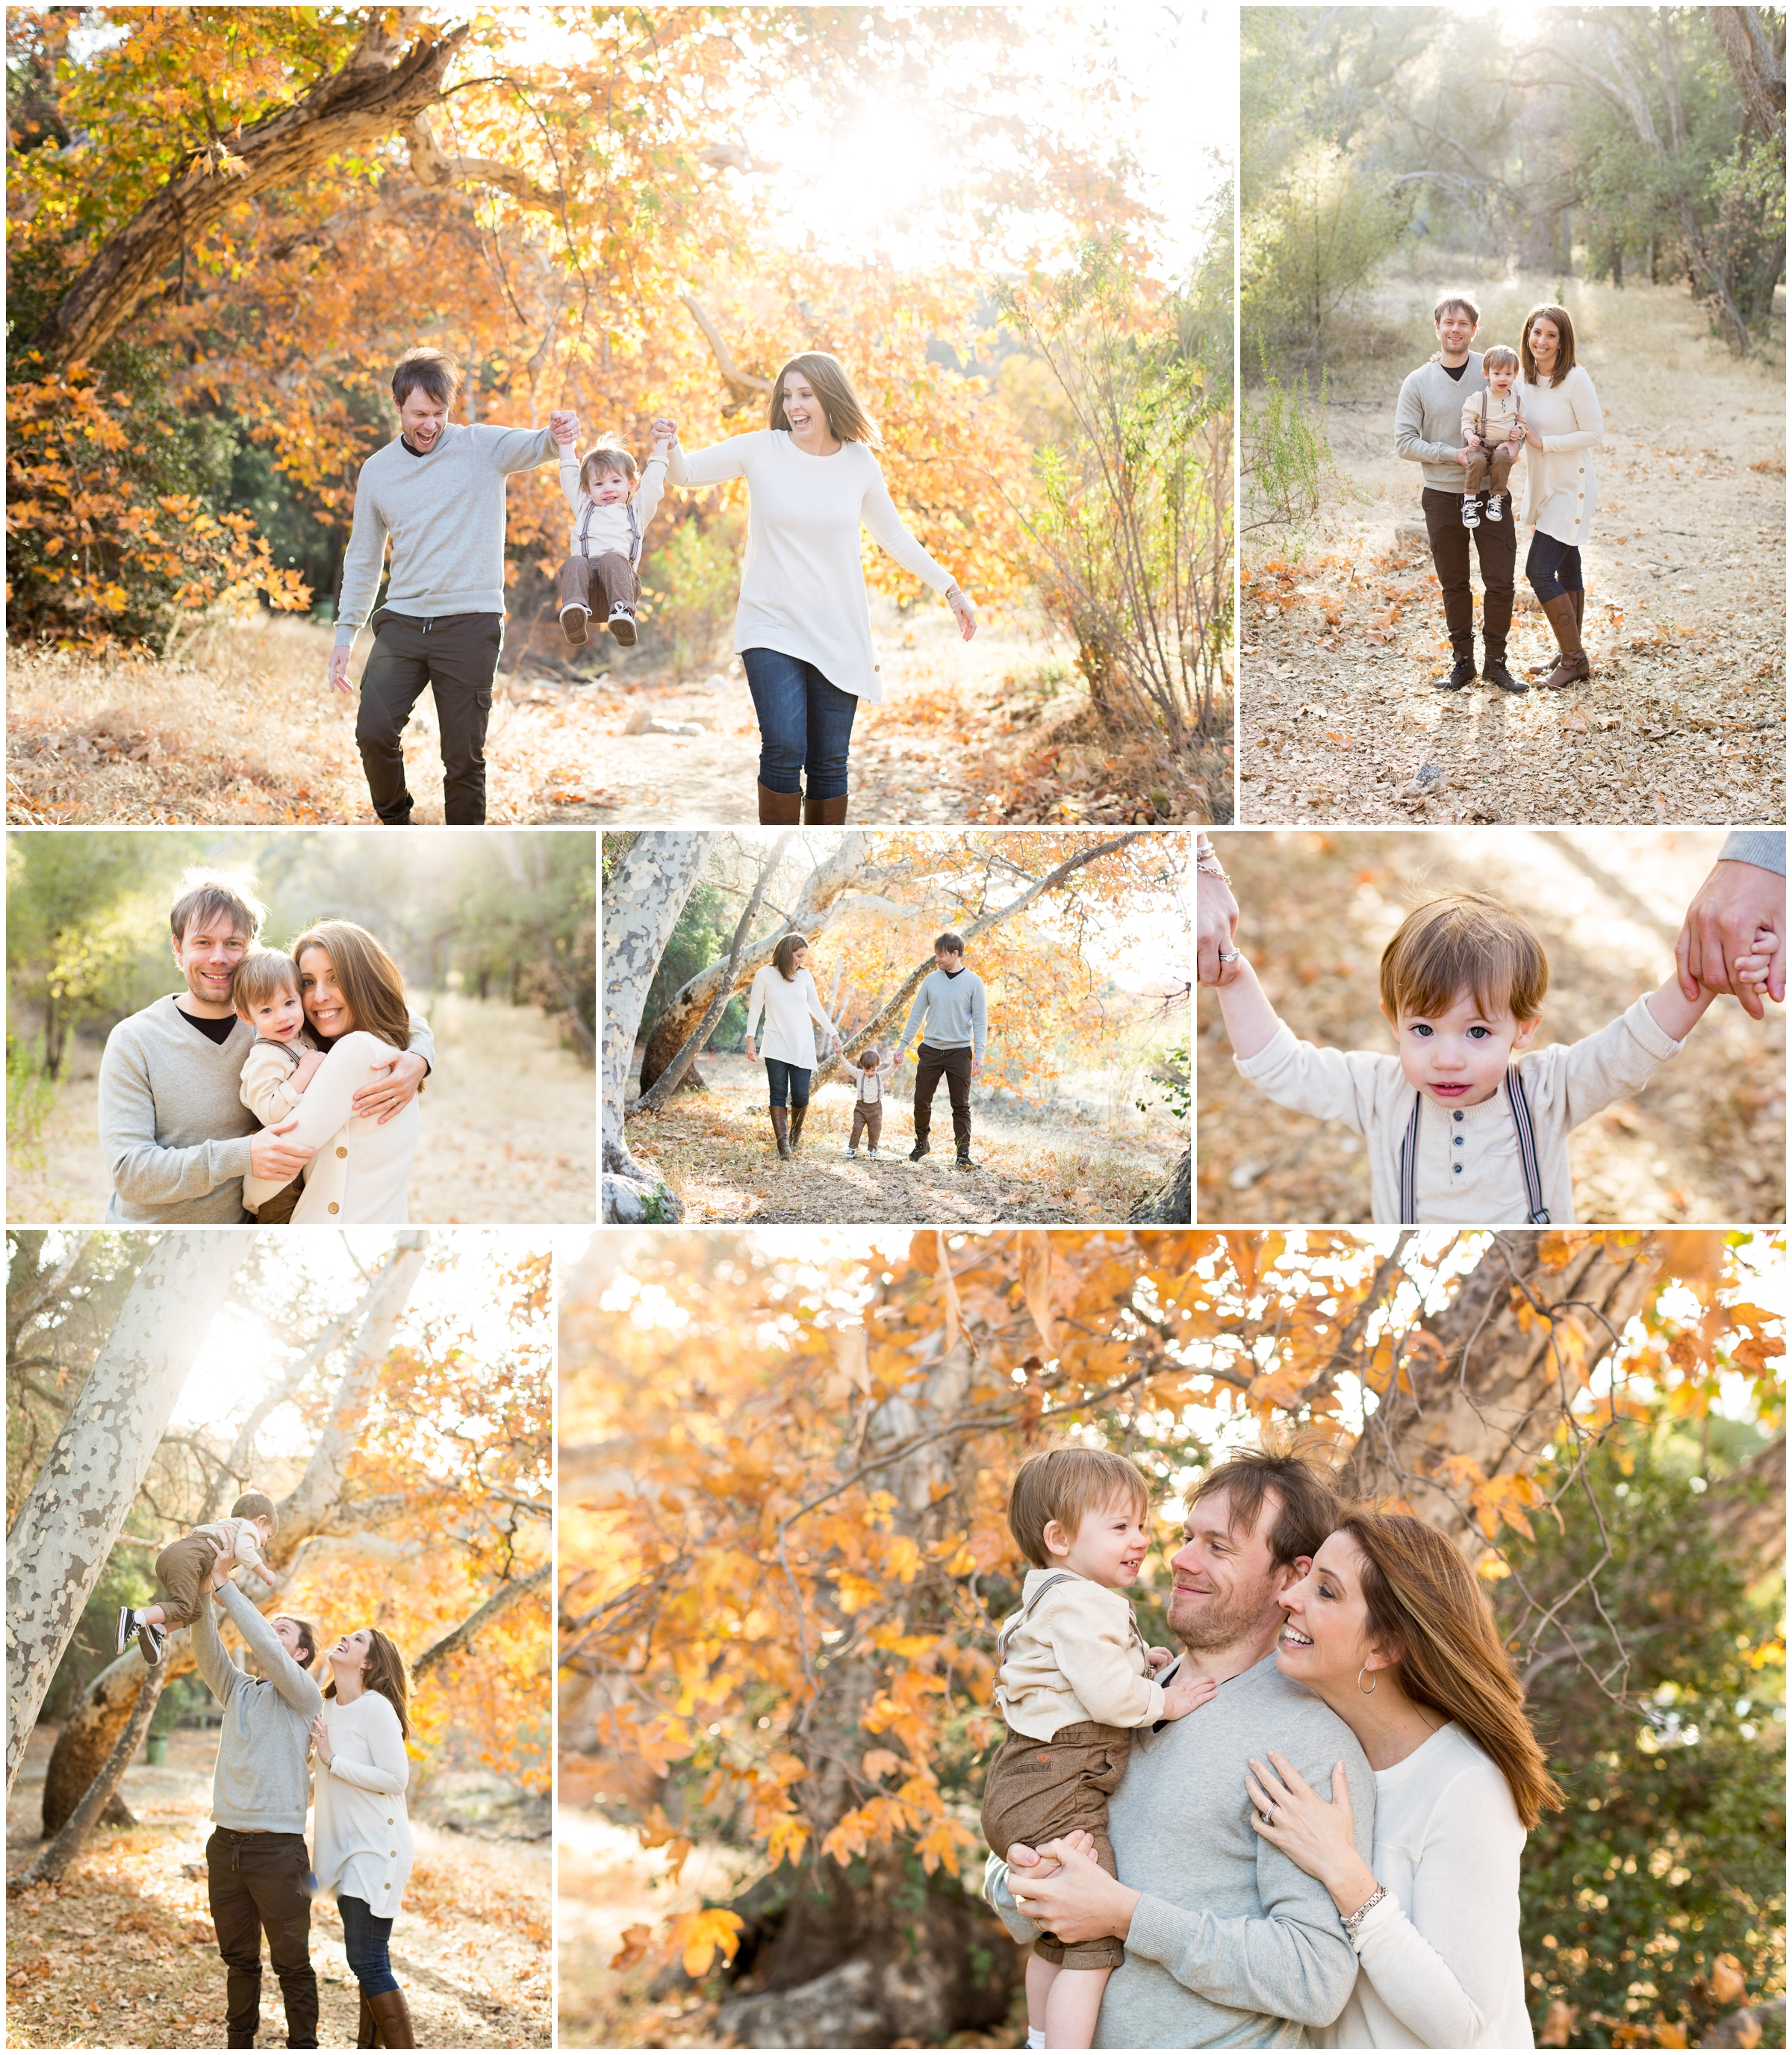 Fall Family Portraits by Just Maggie Photography - Los Angeles Family Photographer